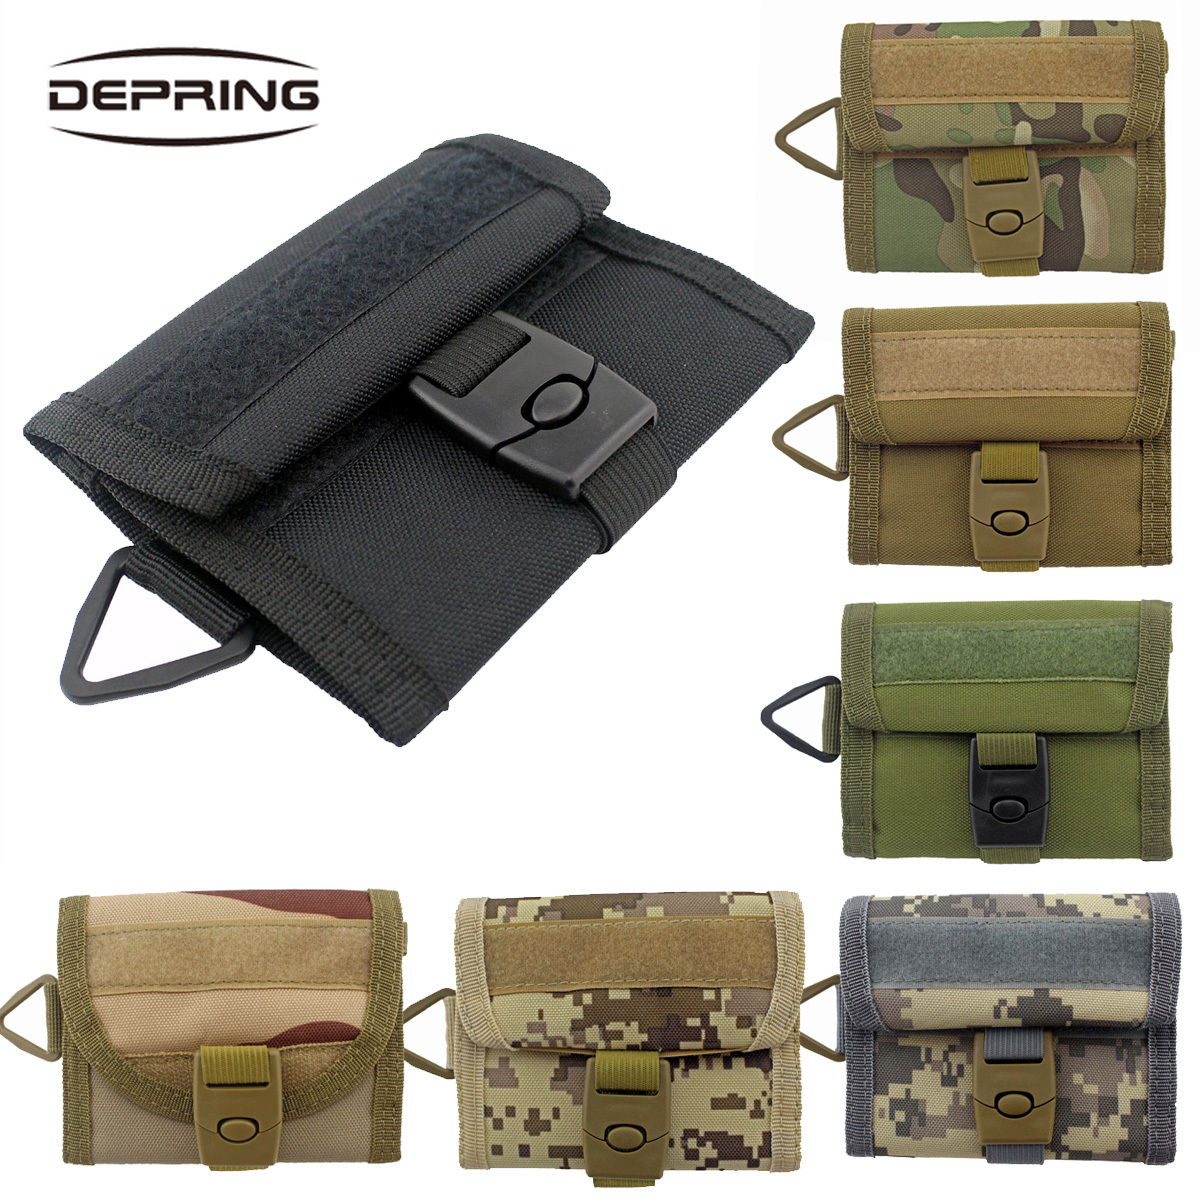 7 Colors New Arrival 800D Nylon Military Outdoor Sports Wallet Purse Mesh Pocket Hook Loop And Buckle Cloure Tactical Molle Bag